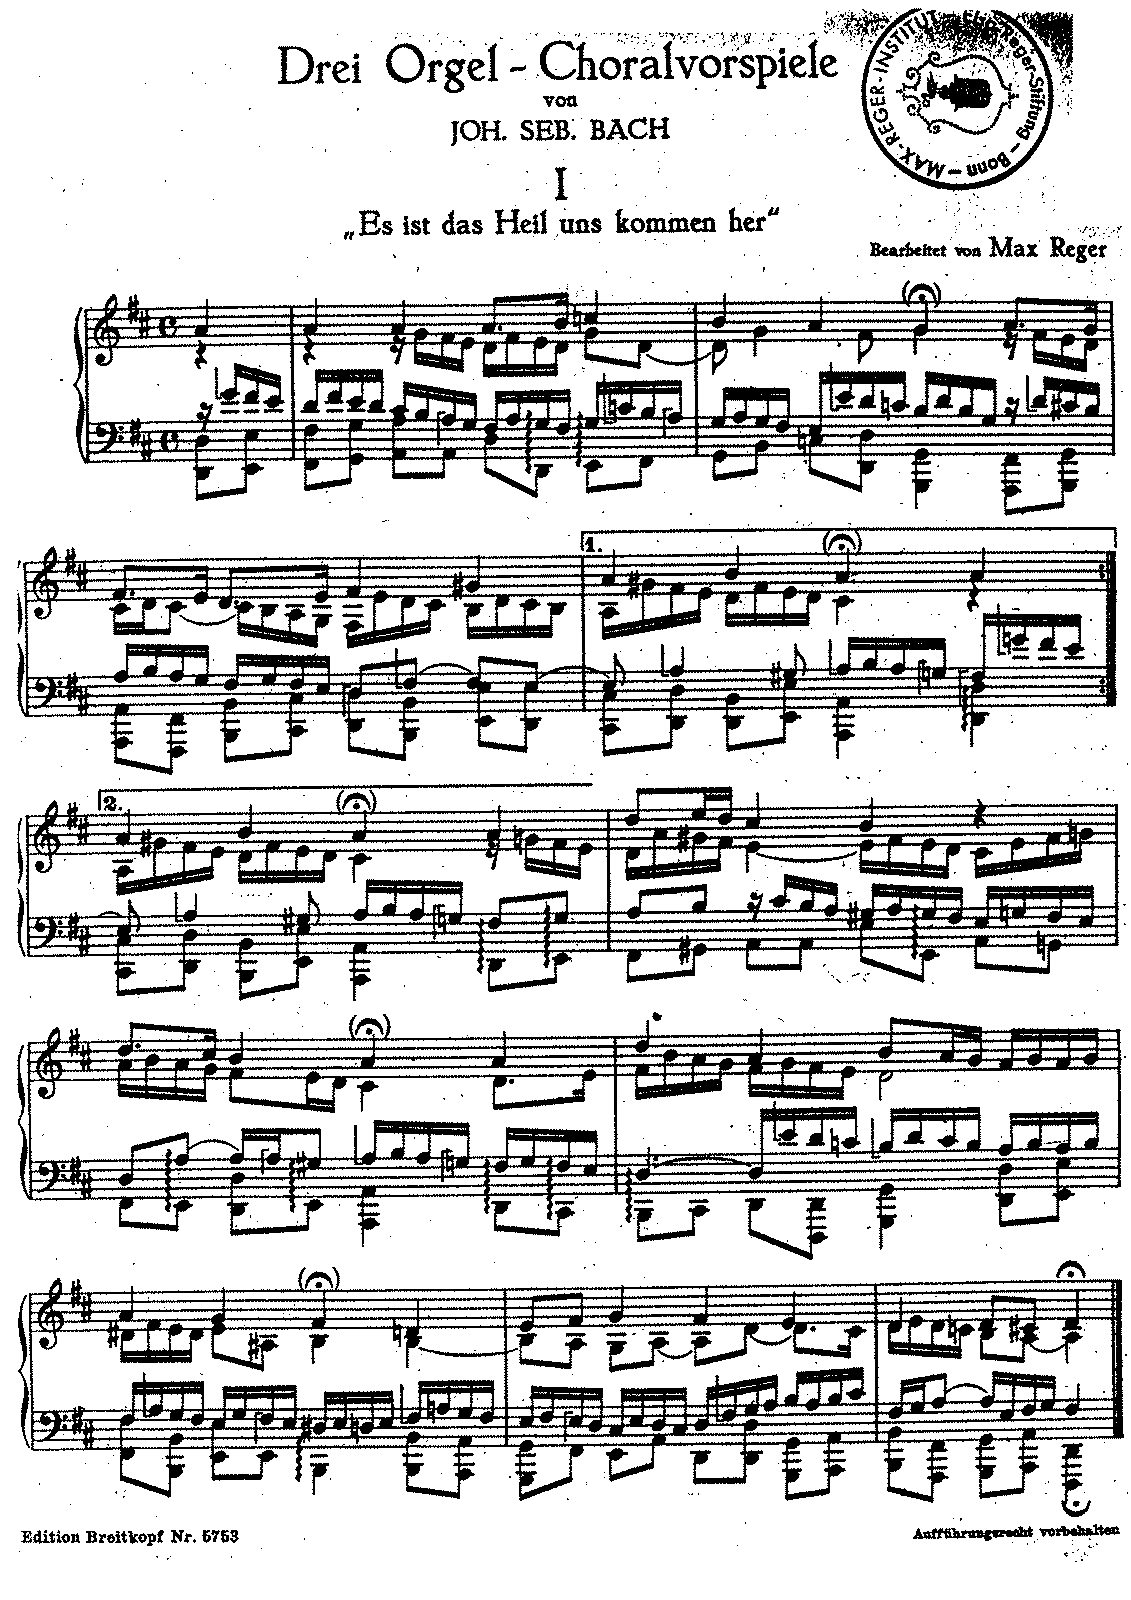 Bach-Reger-3Choral-Preludes.pdf